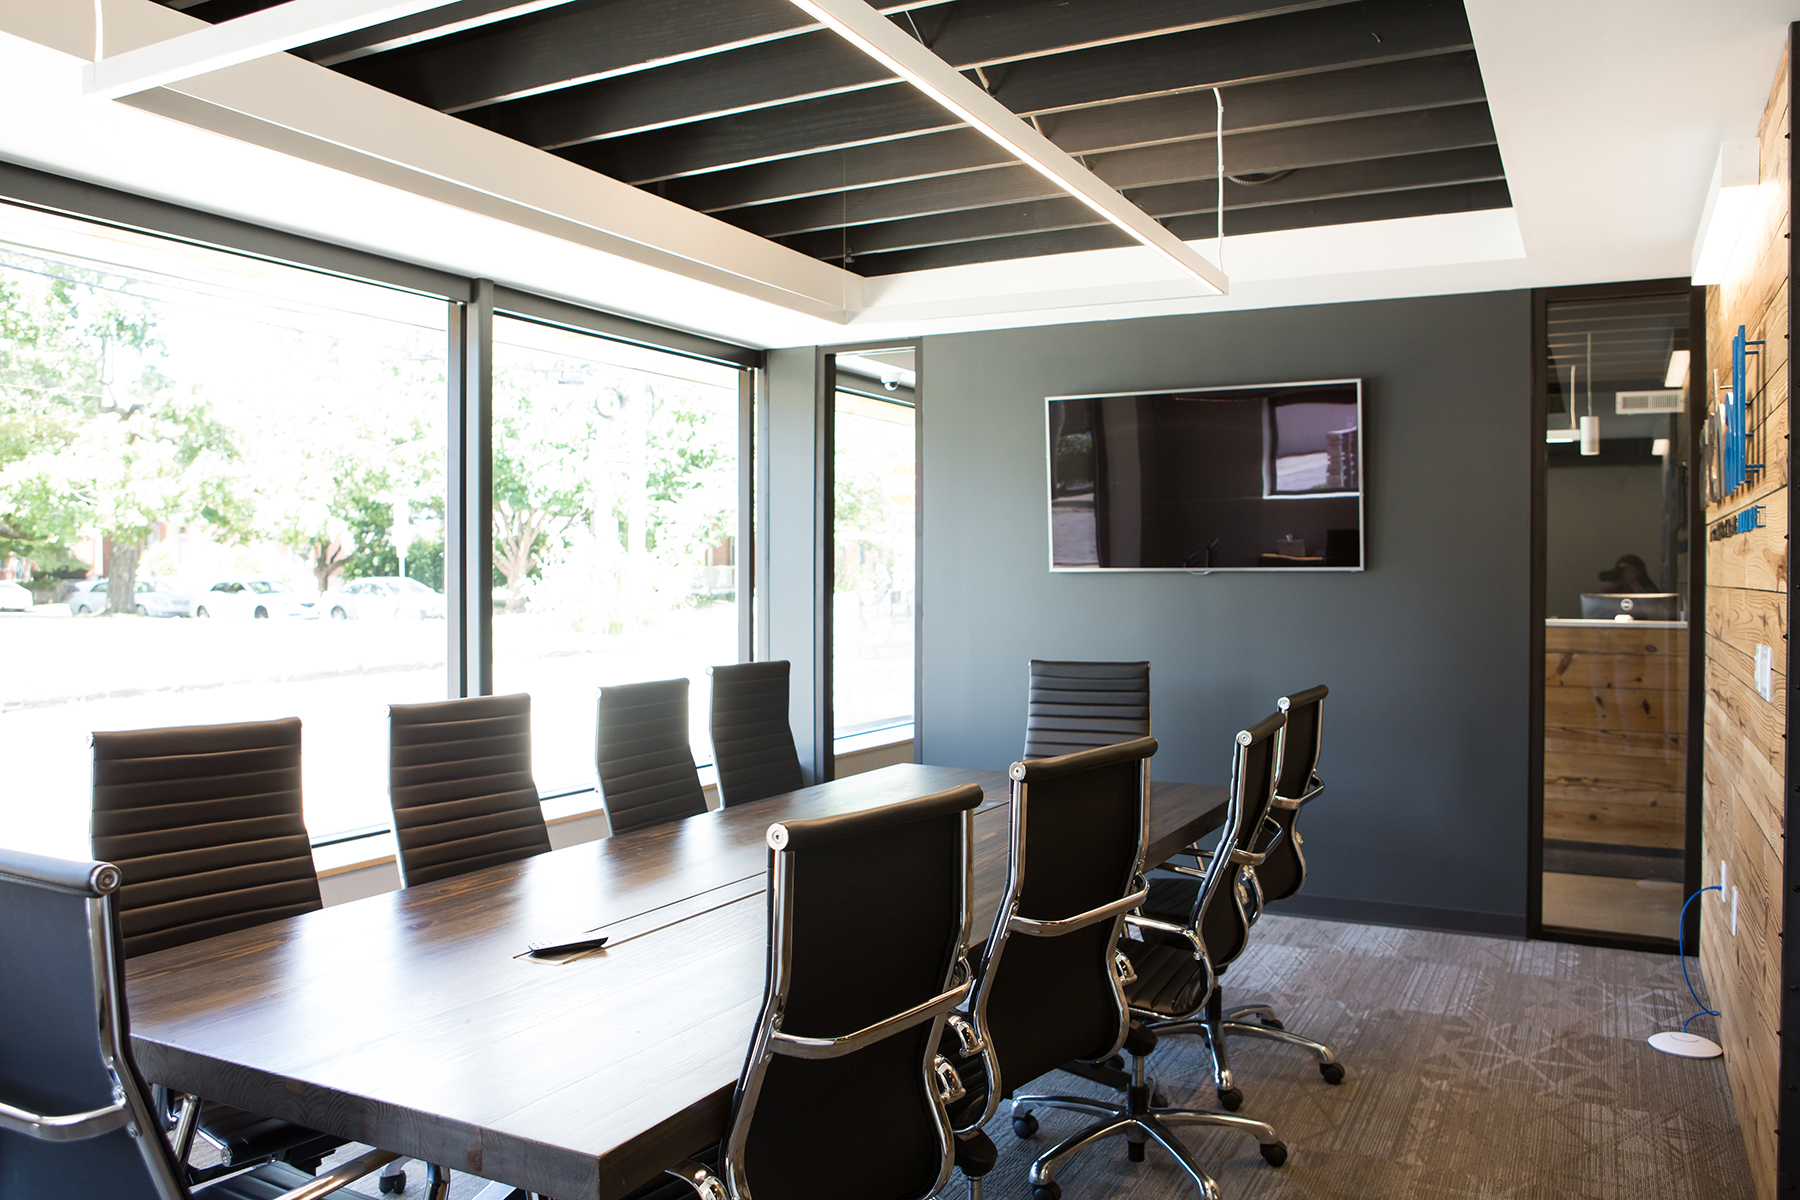 archall cozy conference room design.